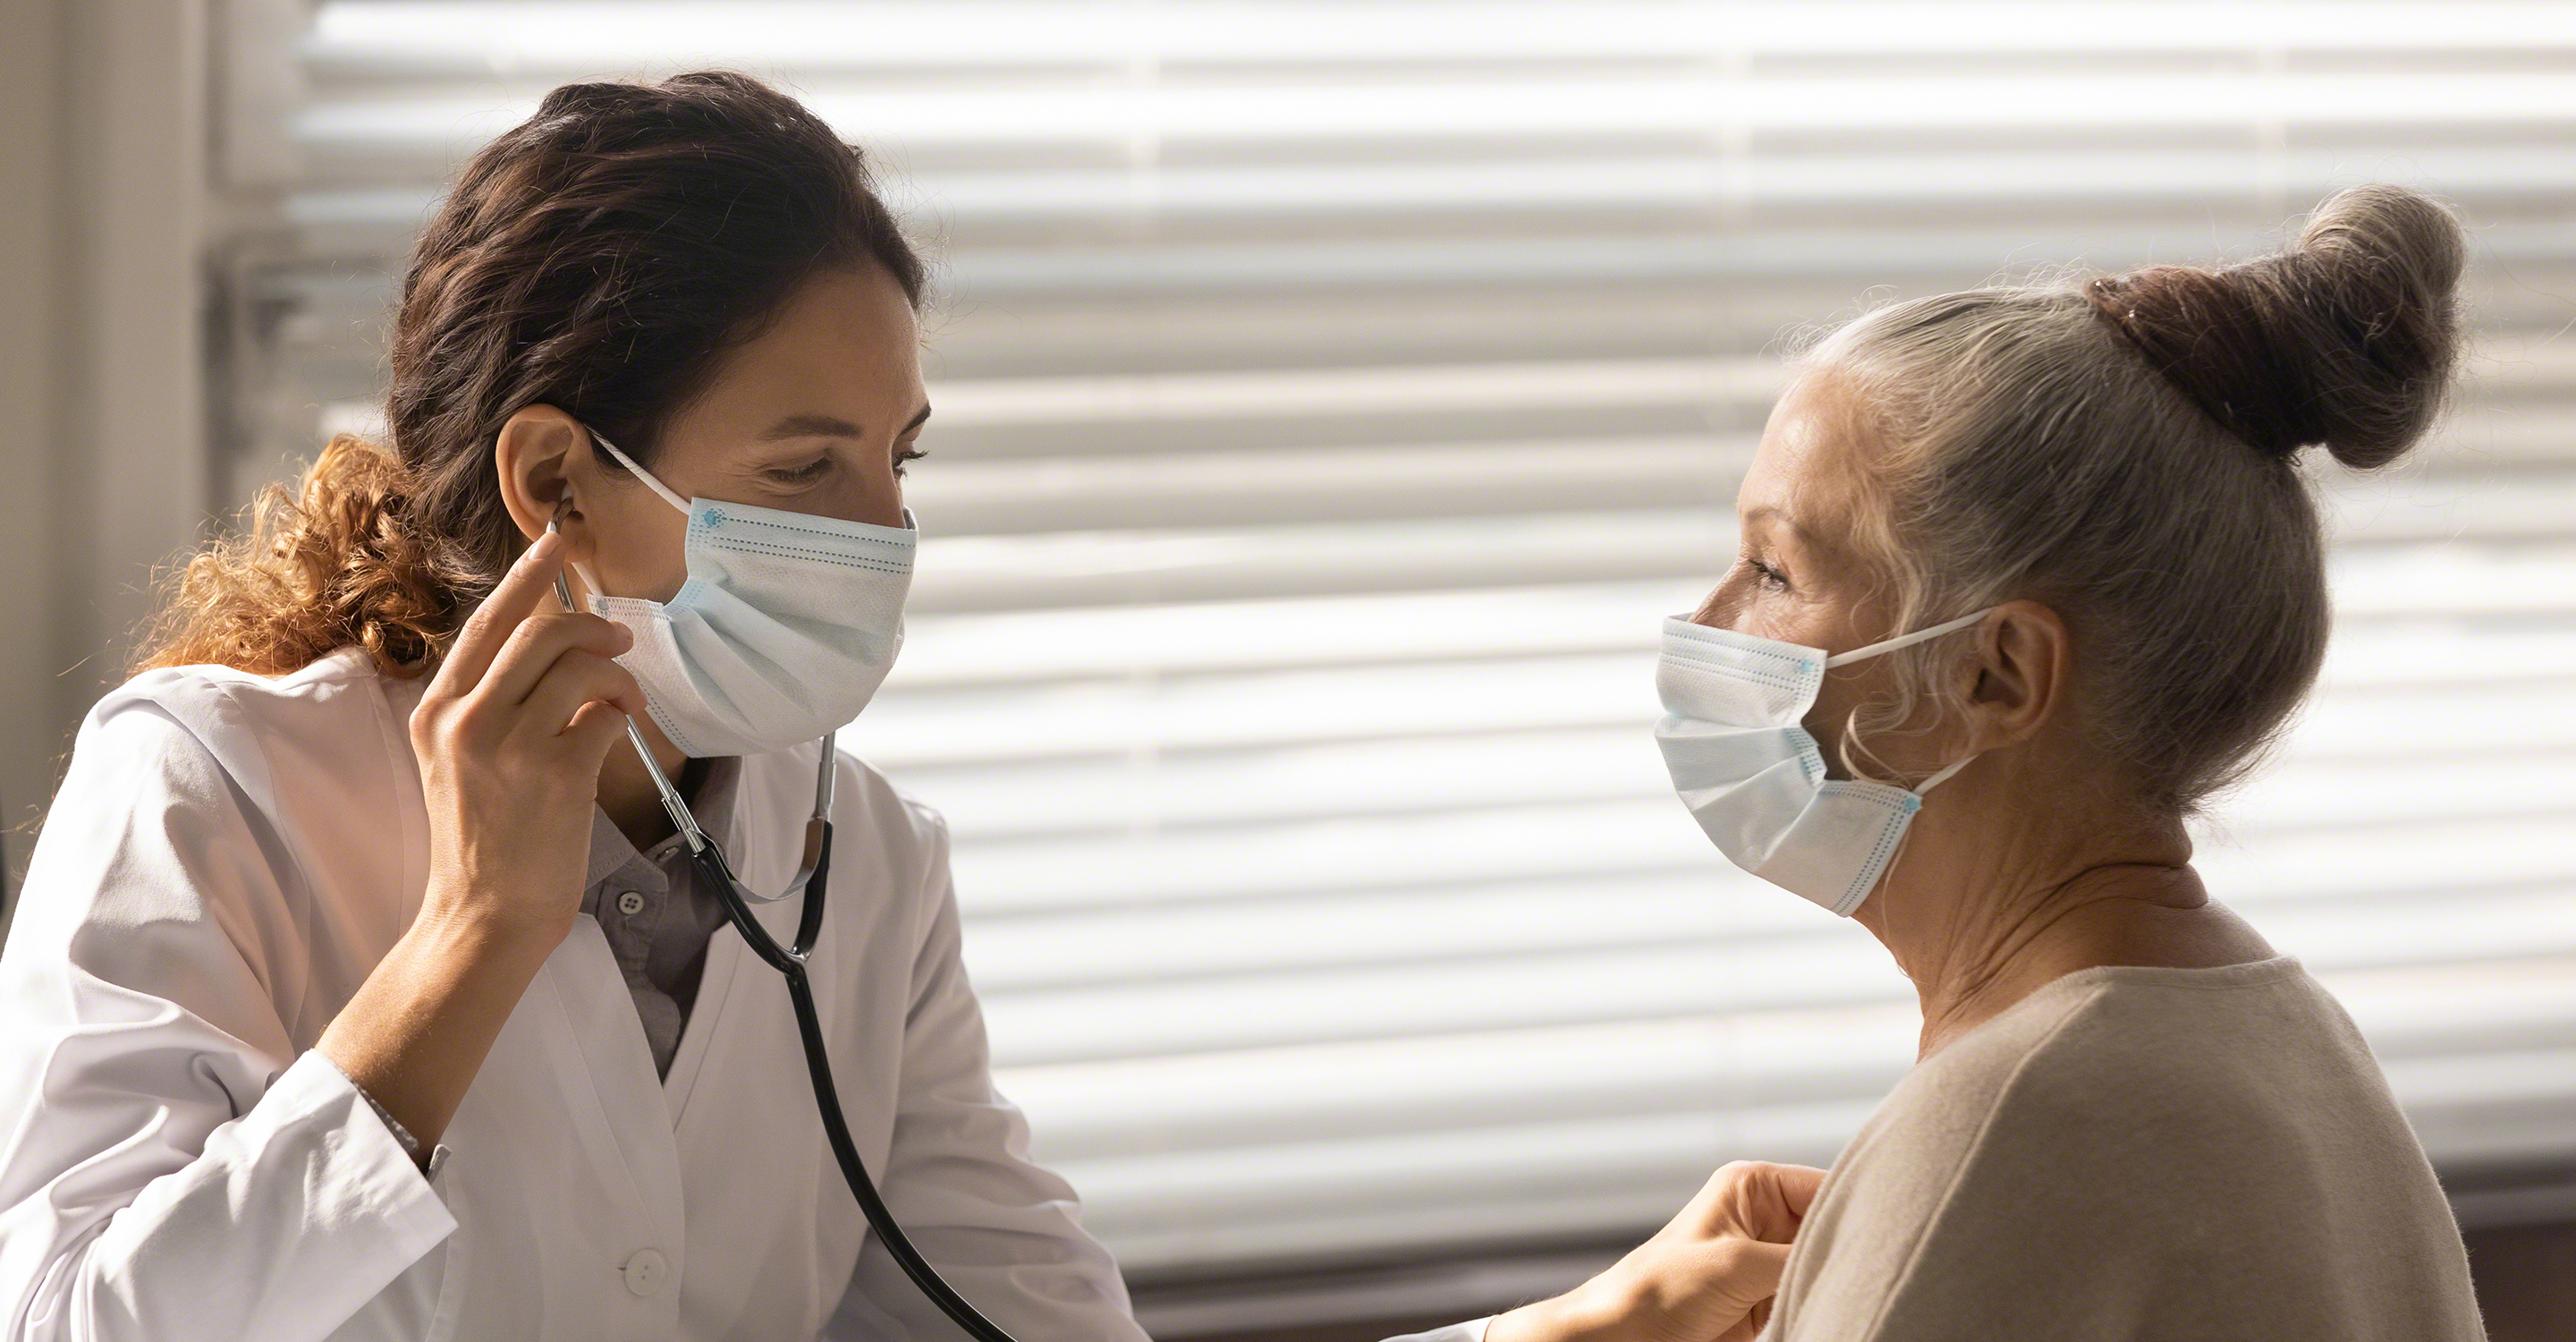 Neighborhood Healthcare uses clean air infection control